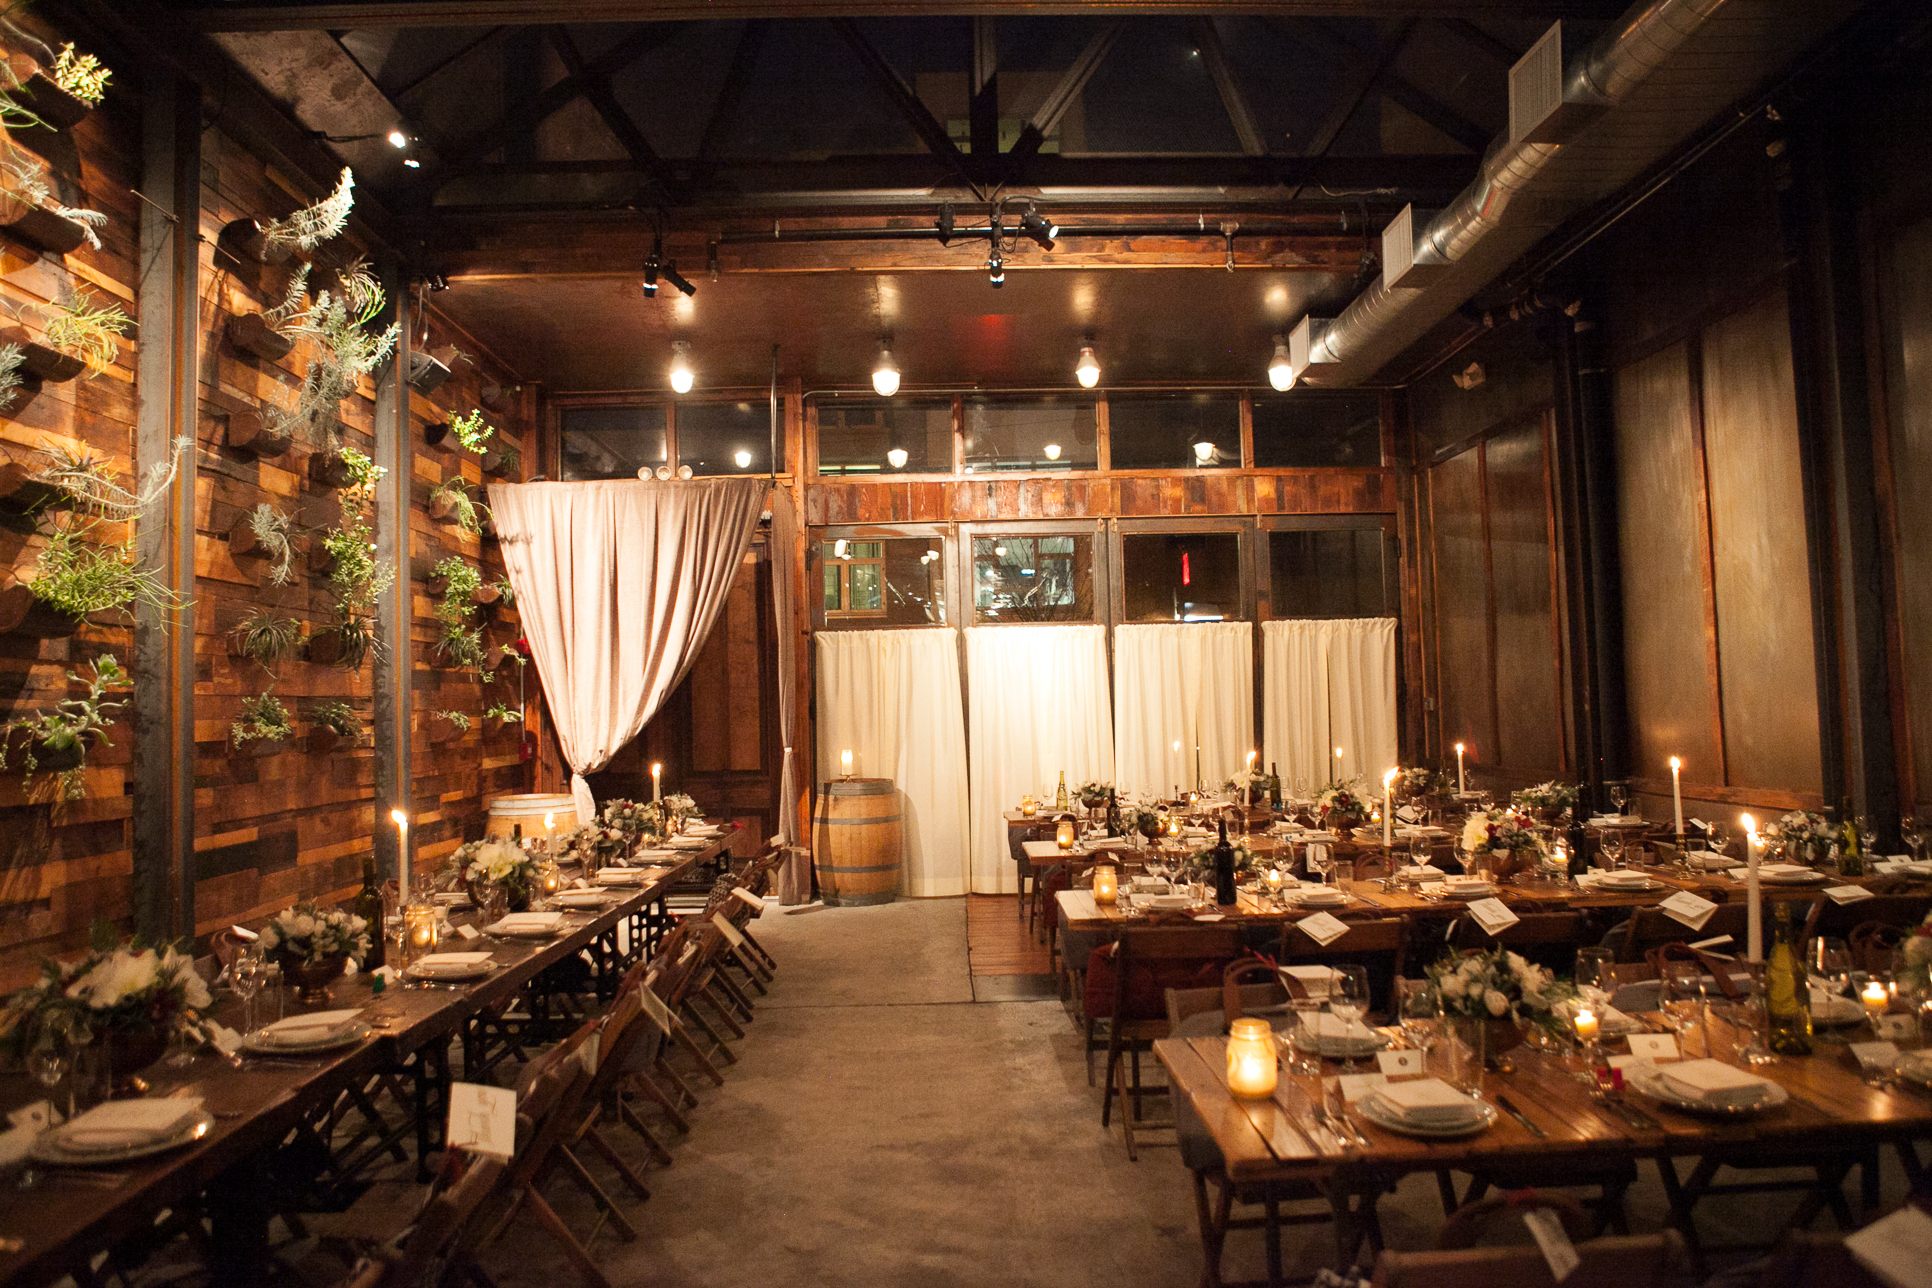 19 NYC Bars With Private Rooms - New York - The Infatuation